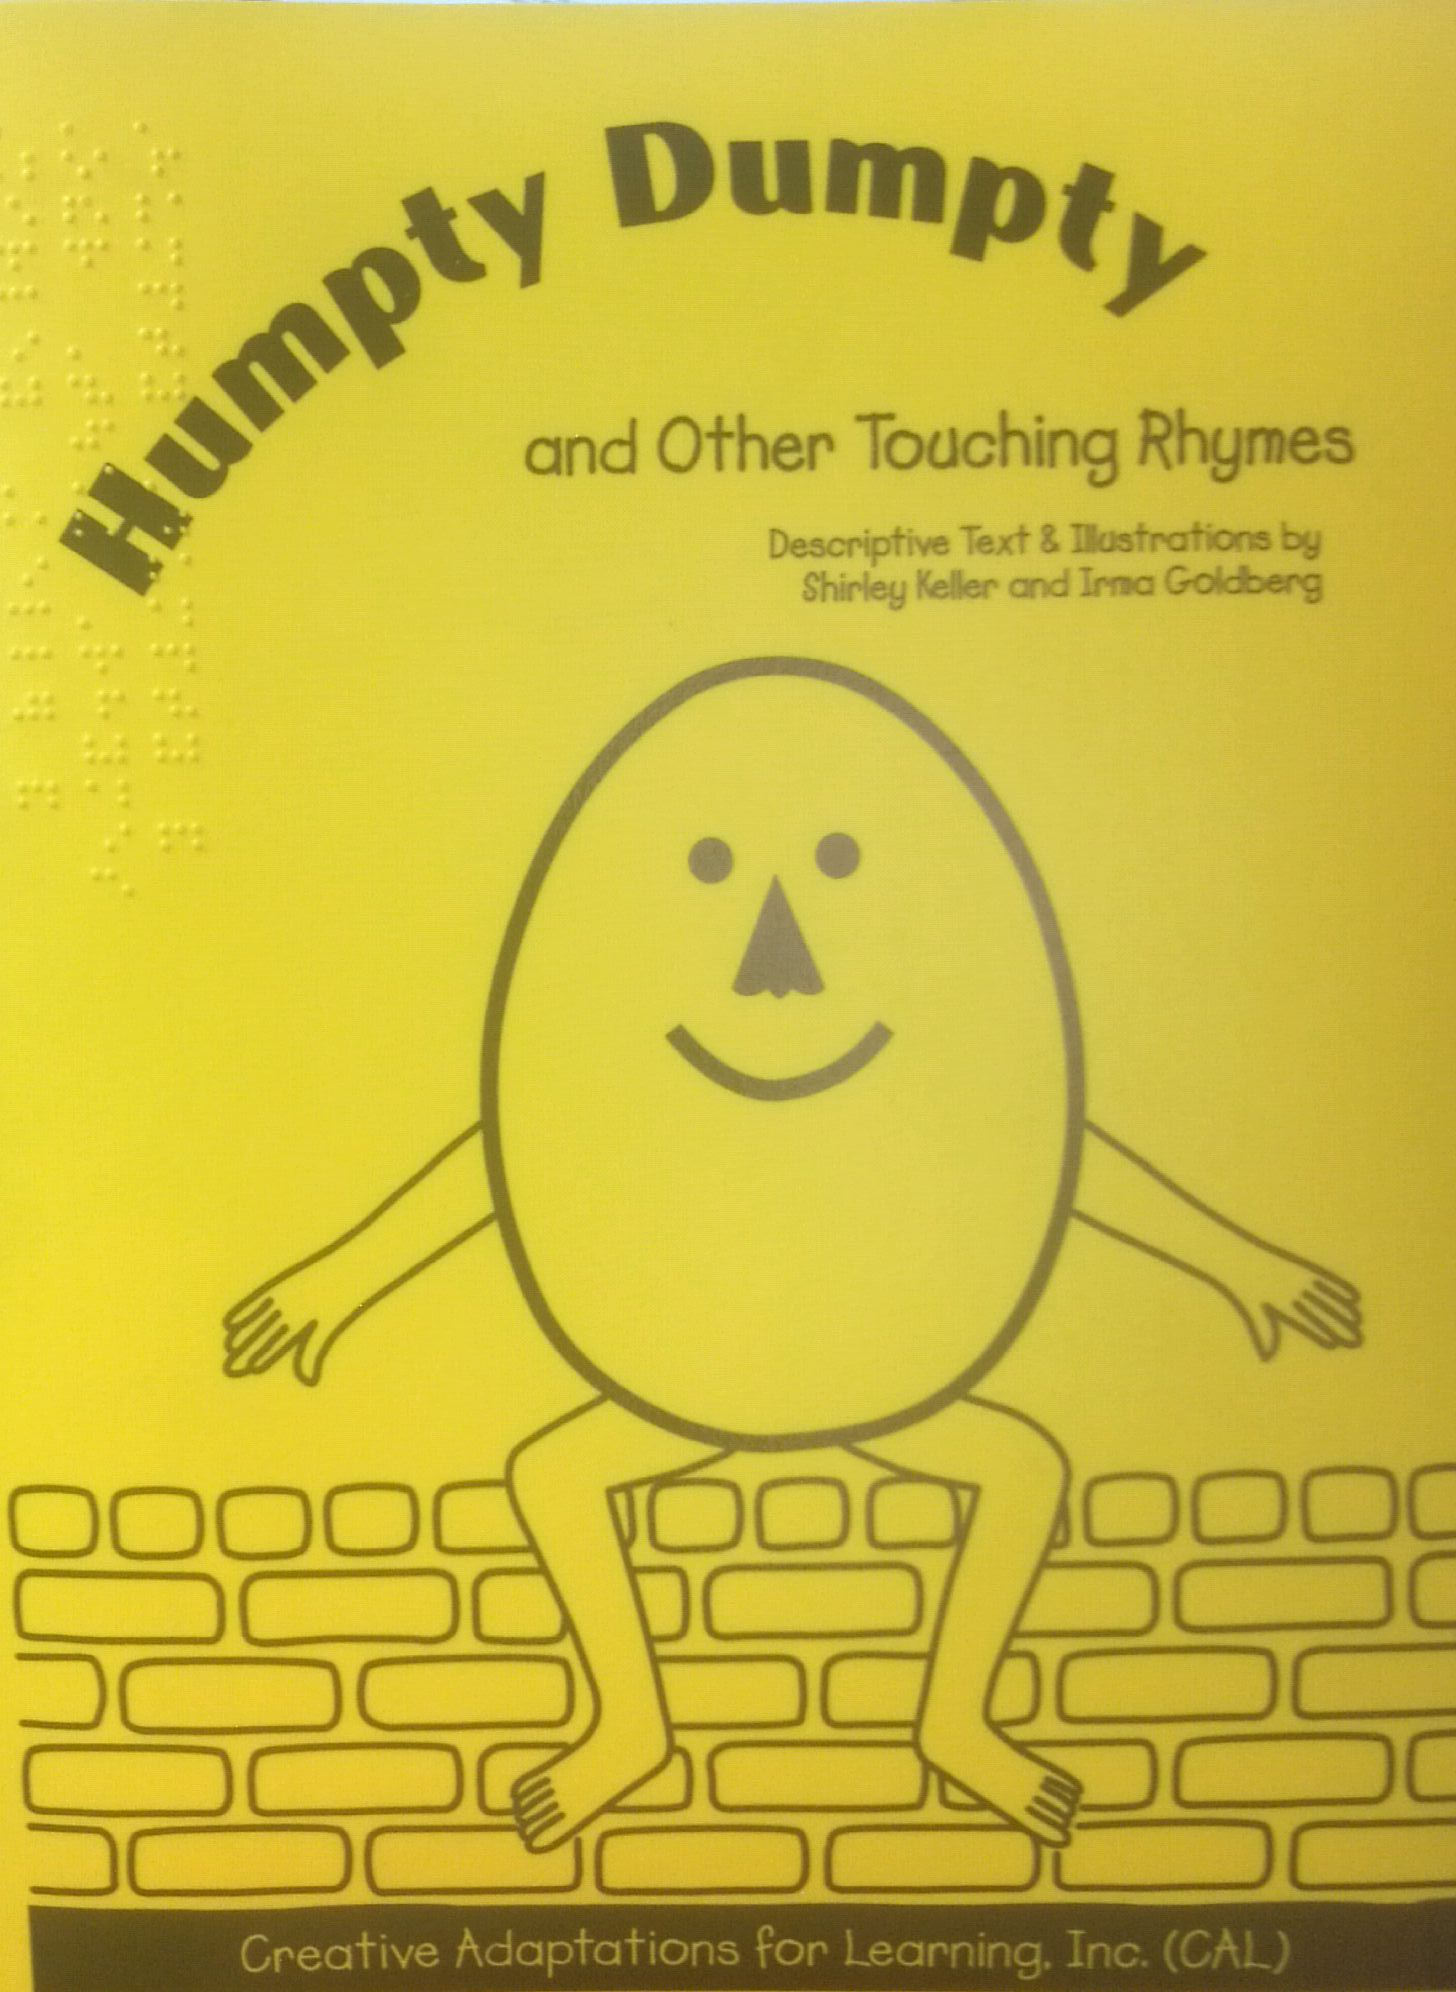 Photo: Humpty-Dumpty and Other Touching Rhymes